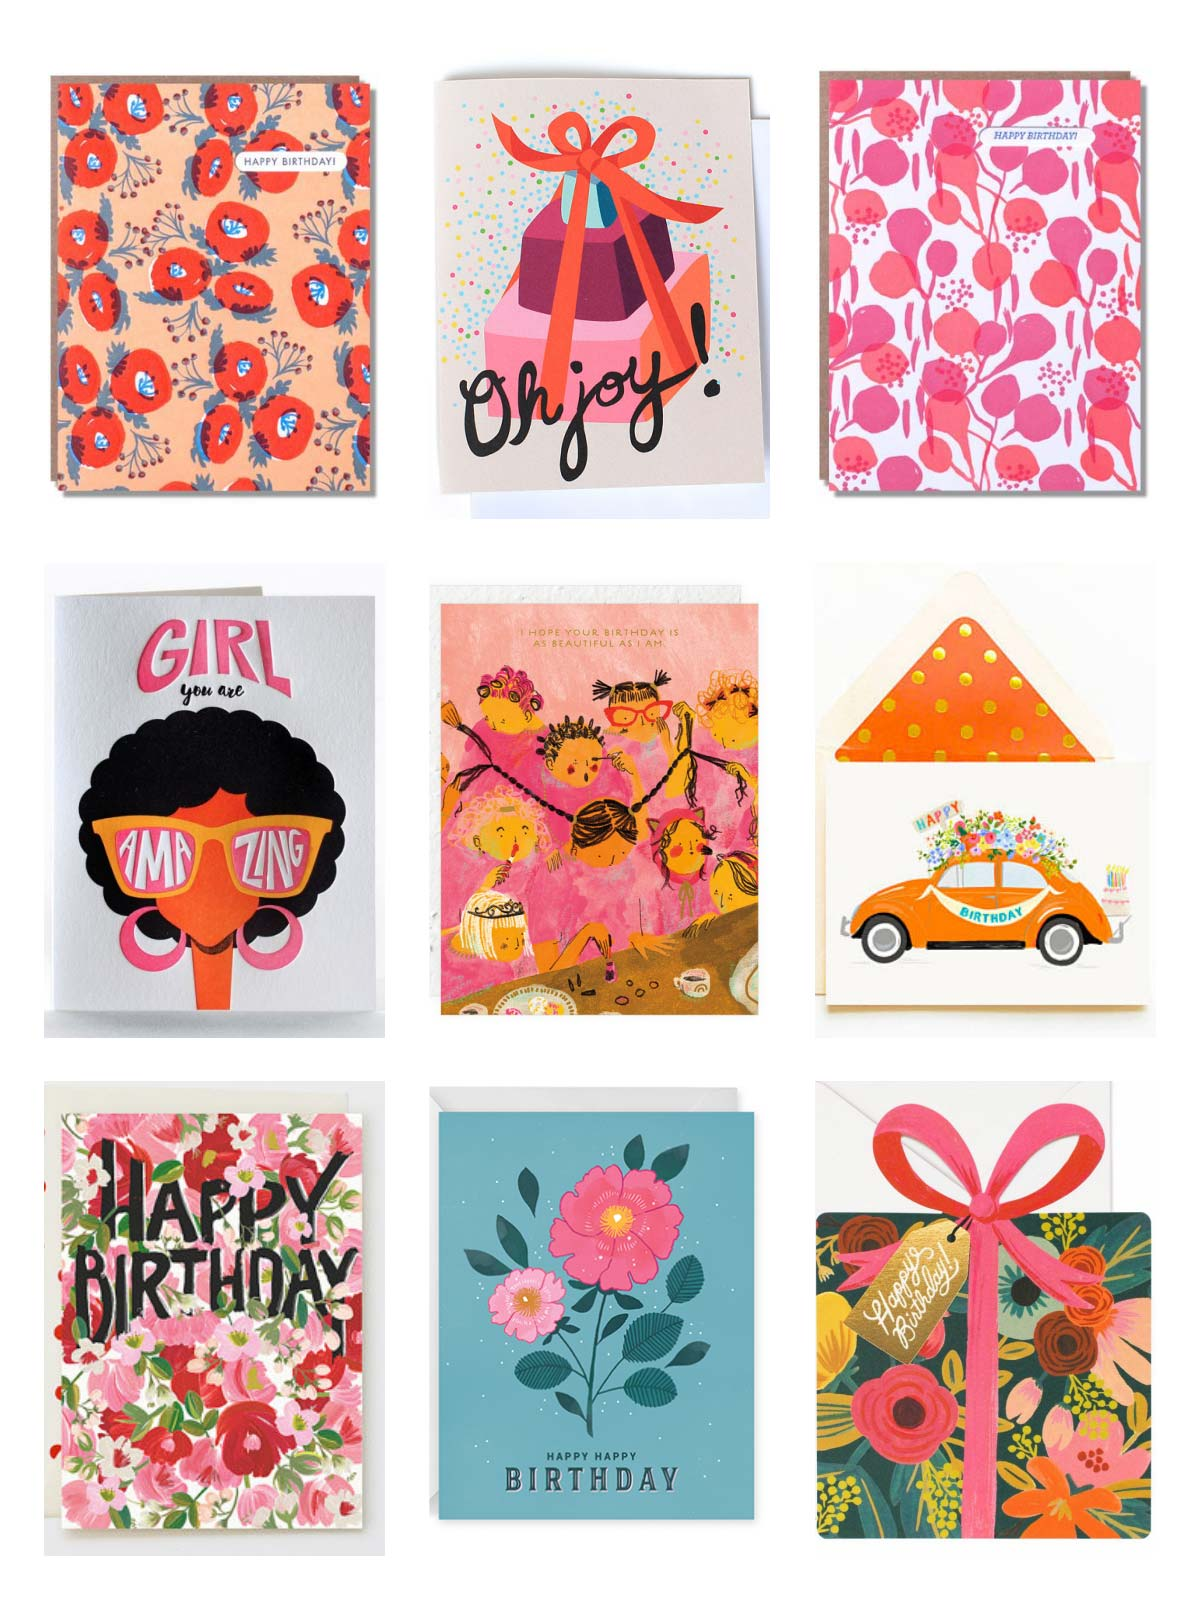 Greeting Card Roundup - Blushing Birthdays